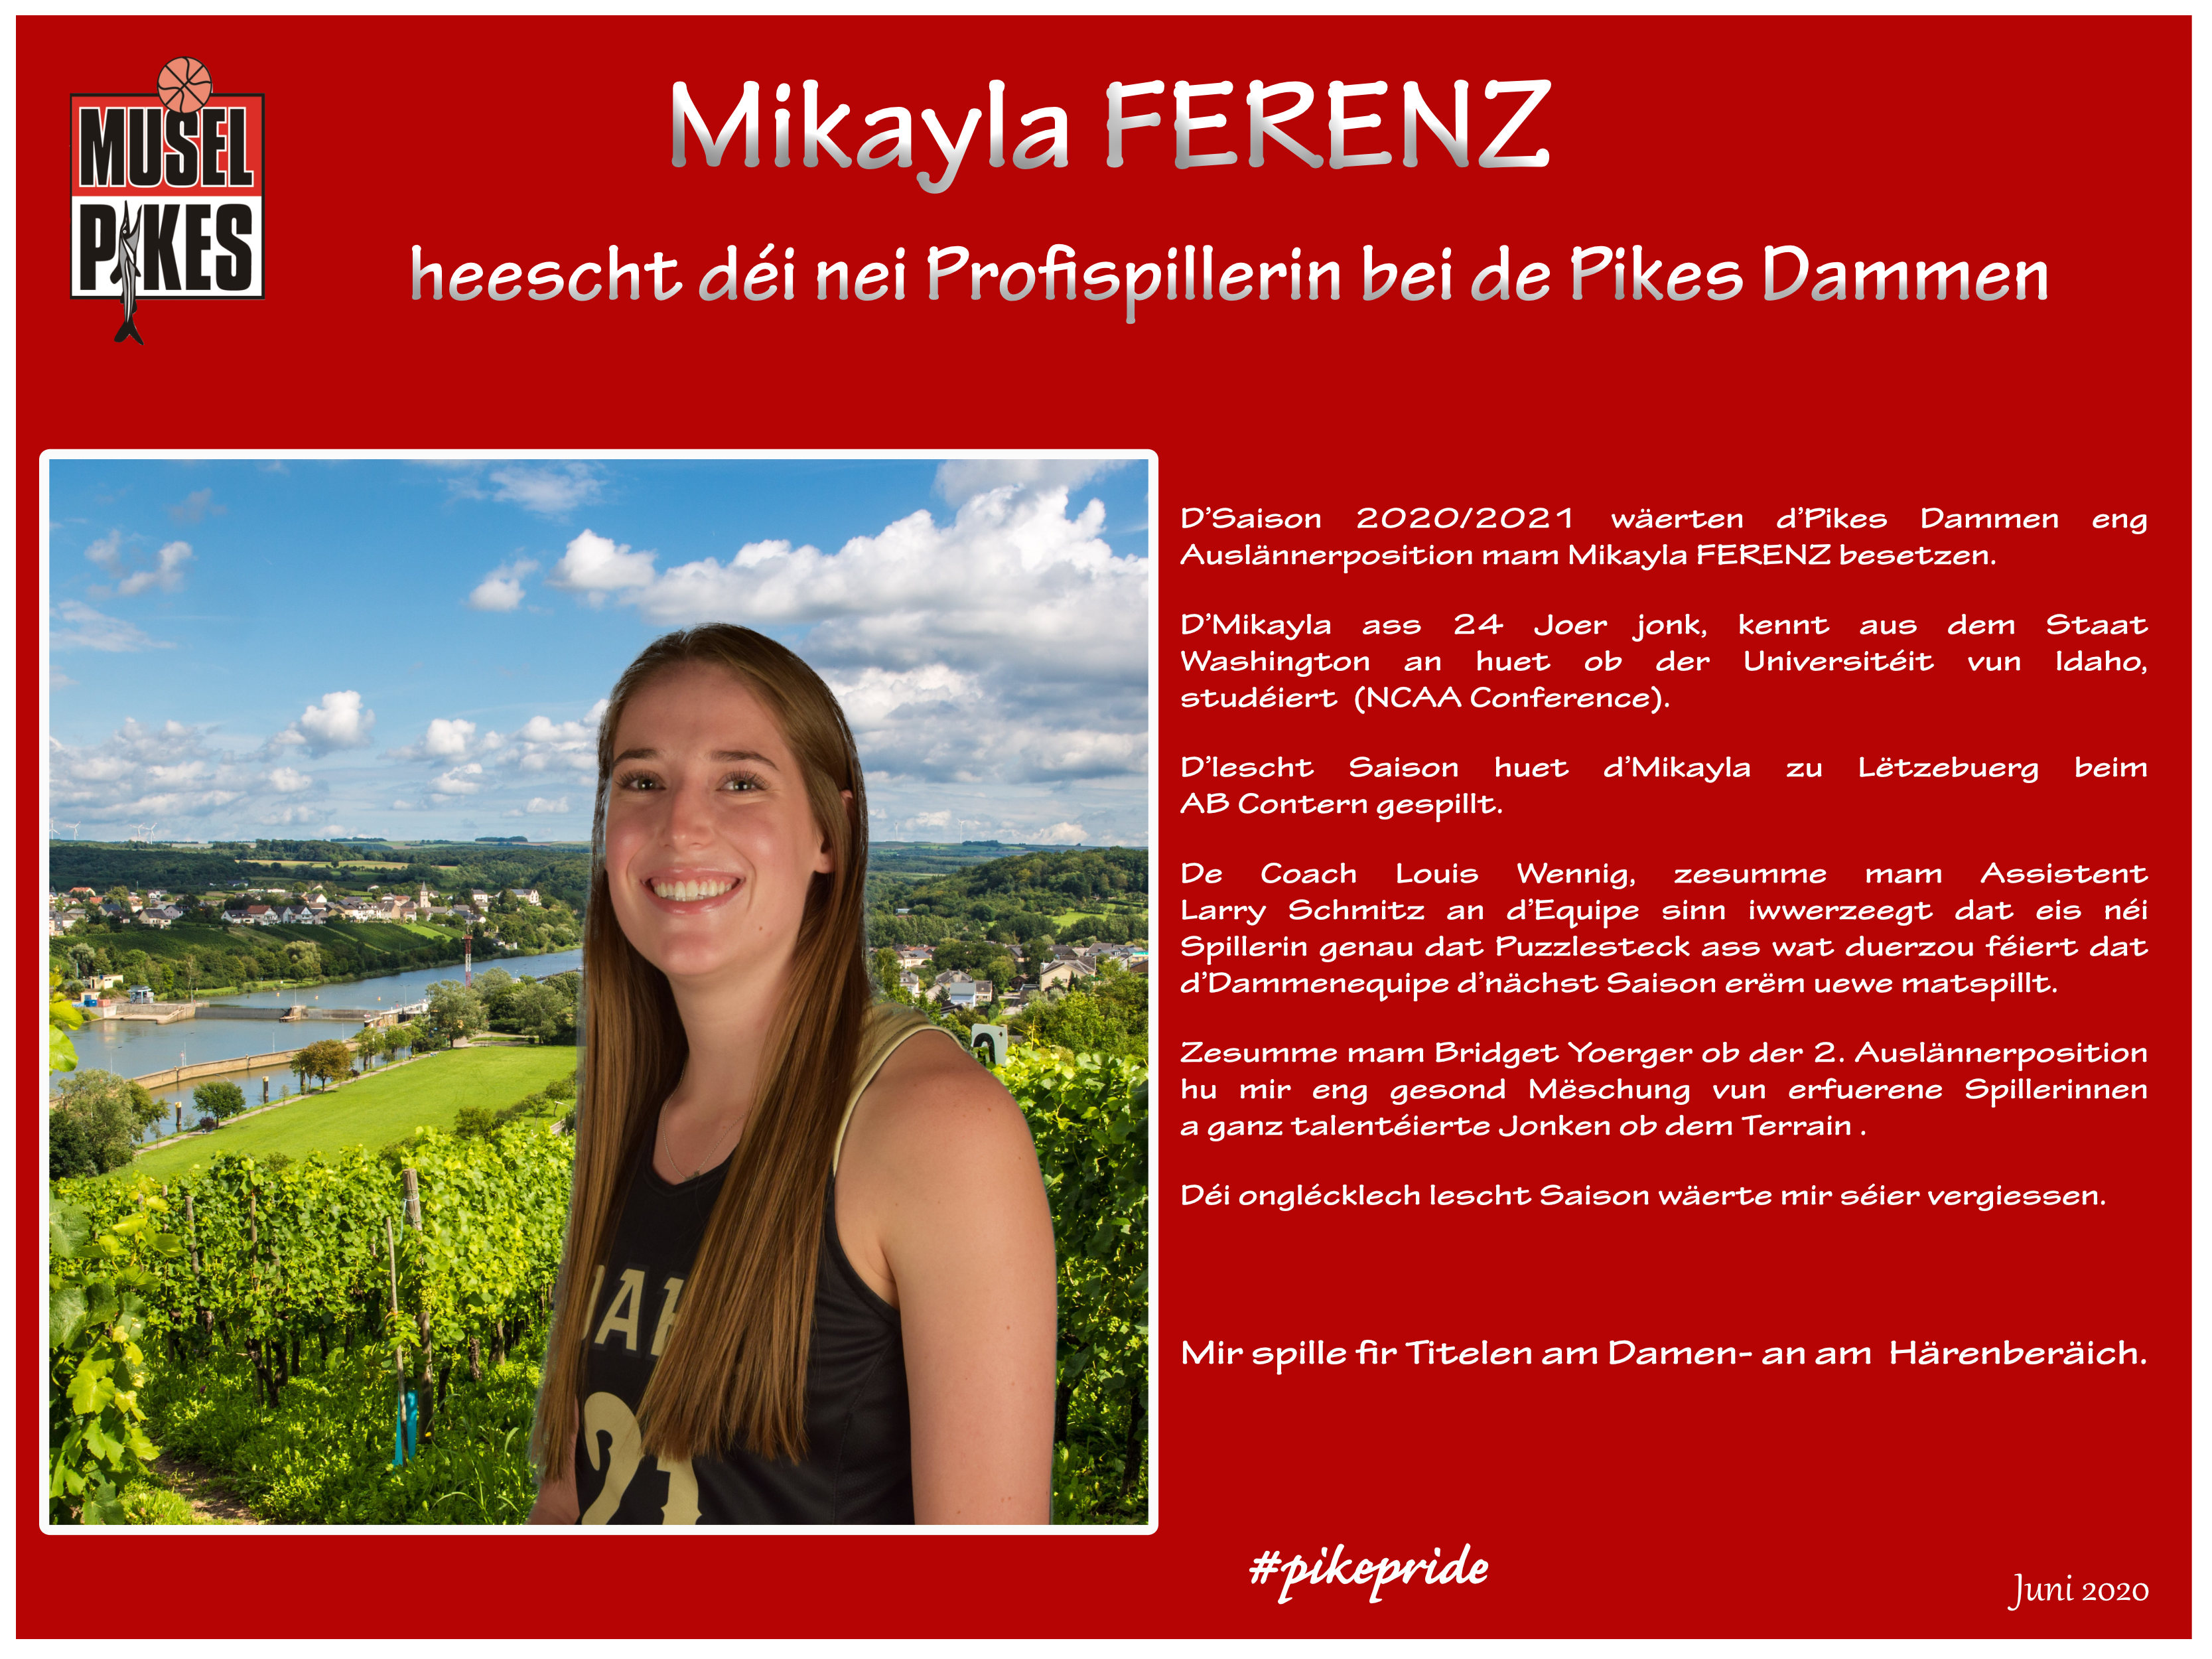 Welcome Mikayla FERENZ